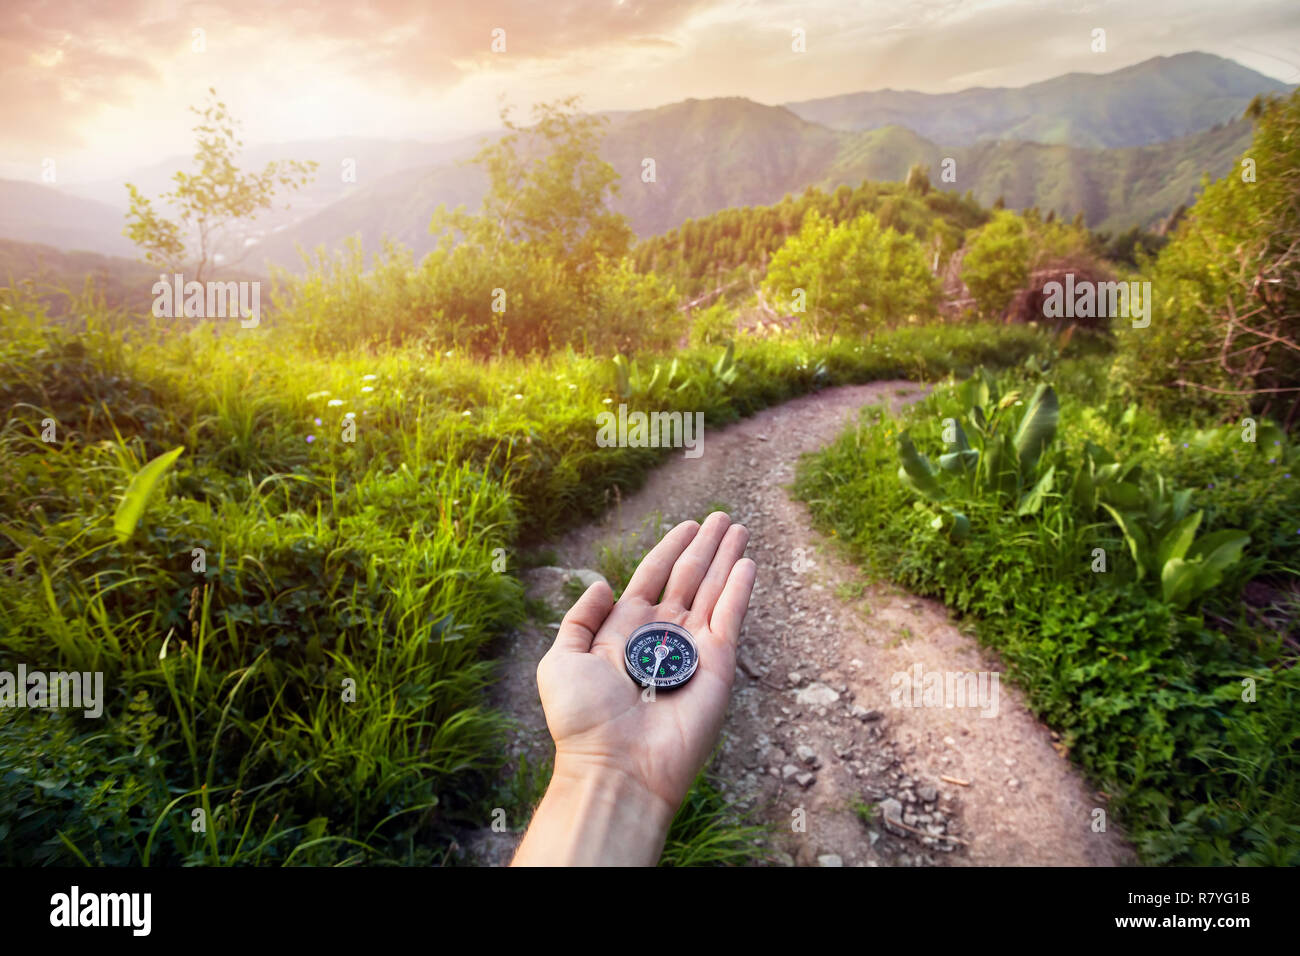 Hand with compass at mountain road at sunset sky in Kazakhstan, central Asia - Stock Image